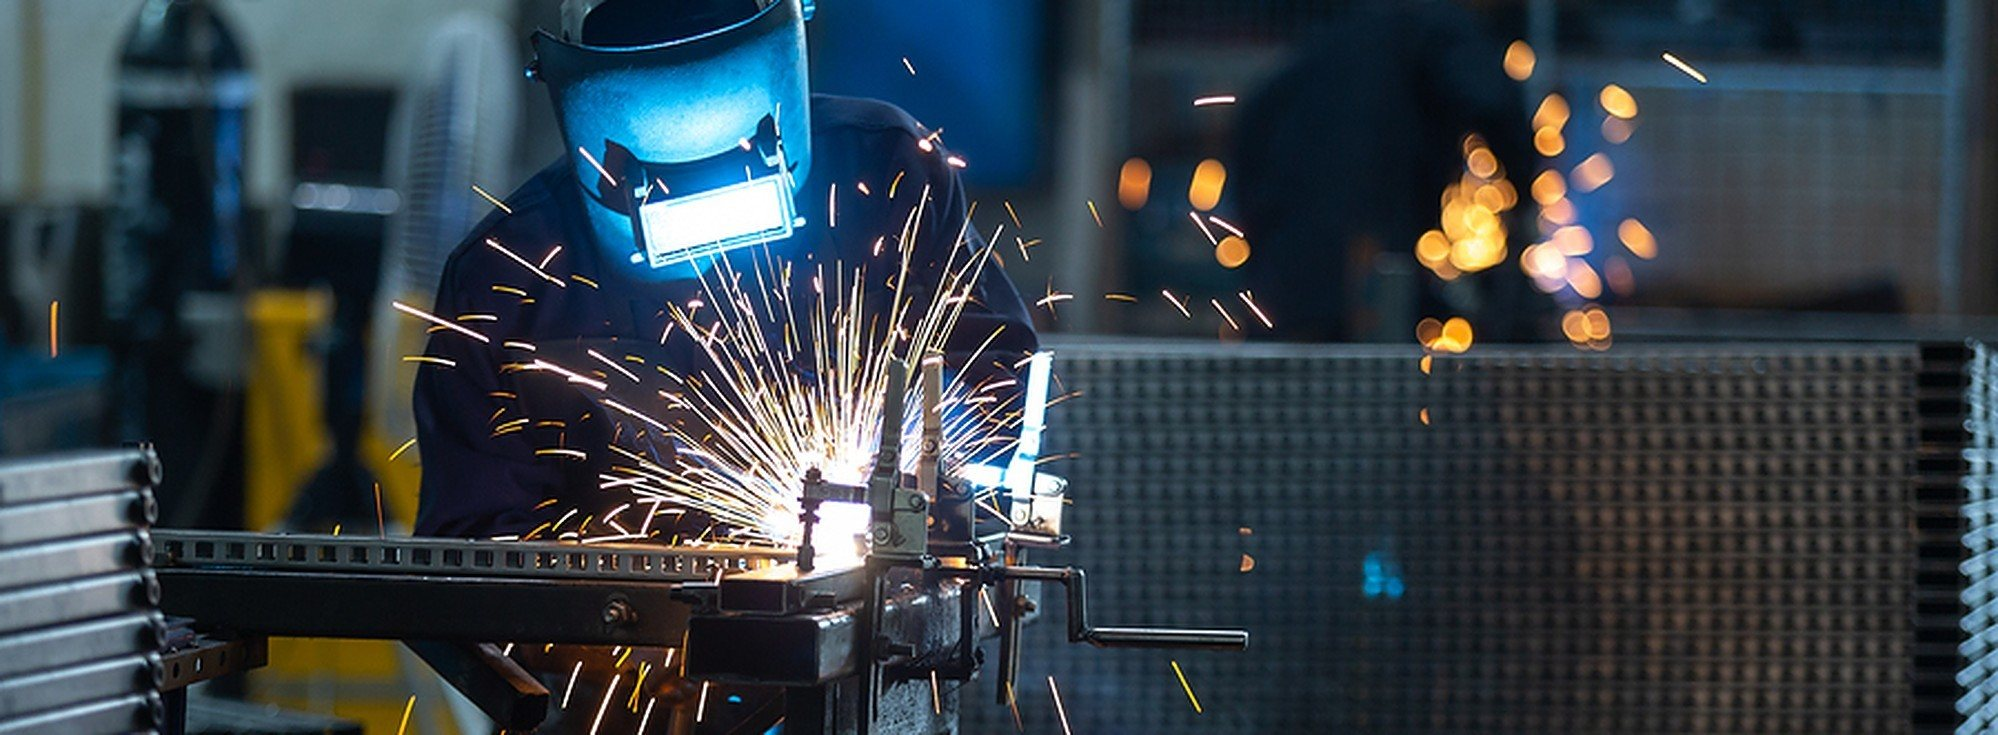 how to get the c-60 welding contractor license. how to meet the CSLB license requirements for welding contractor